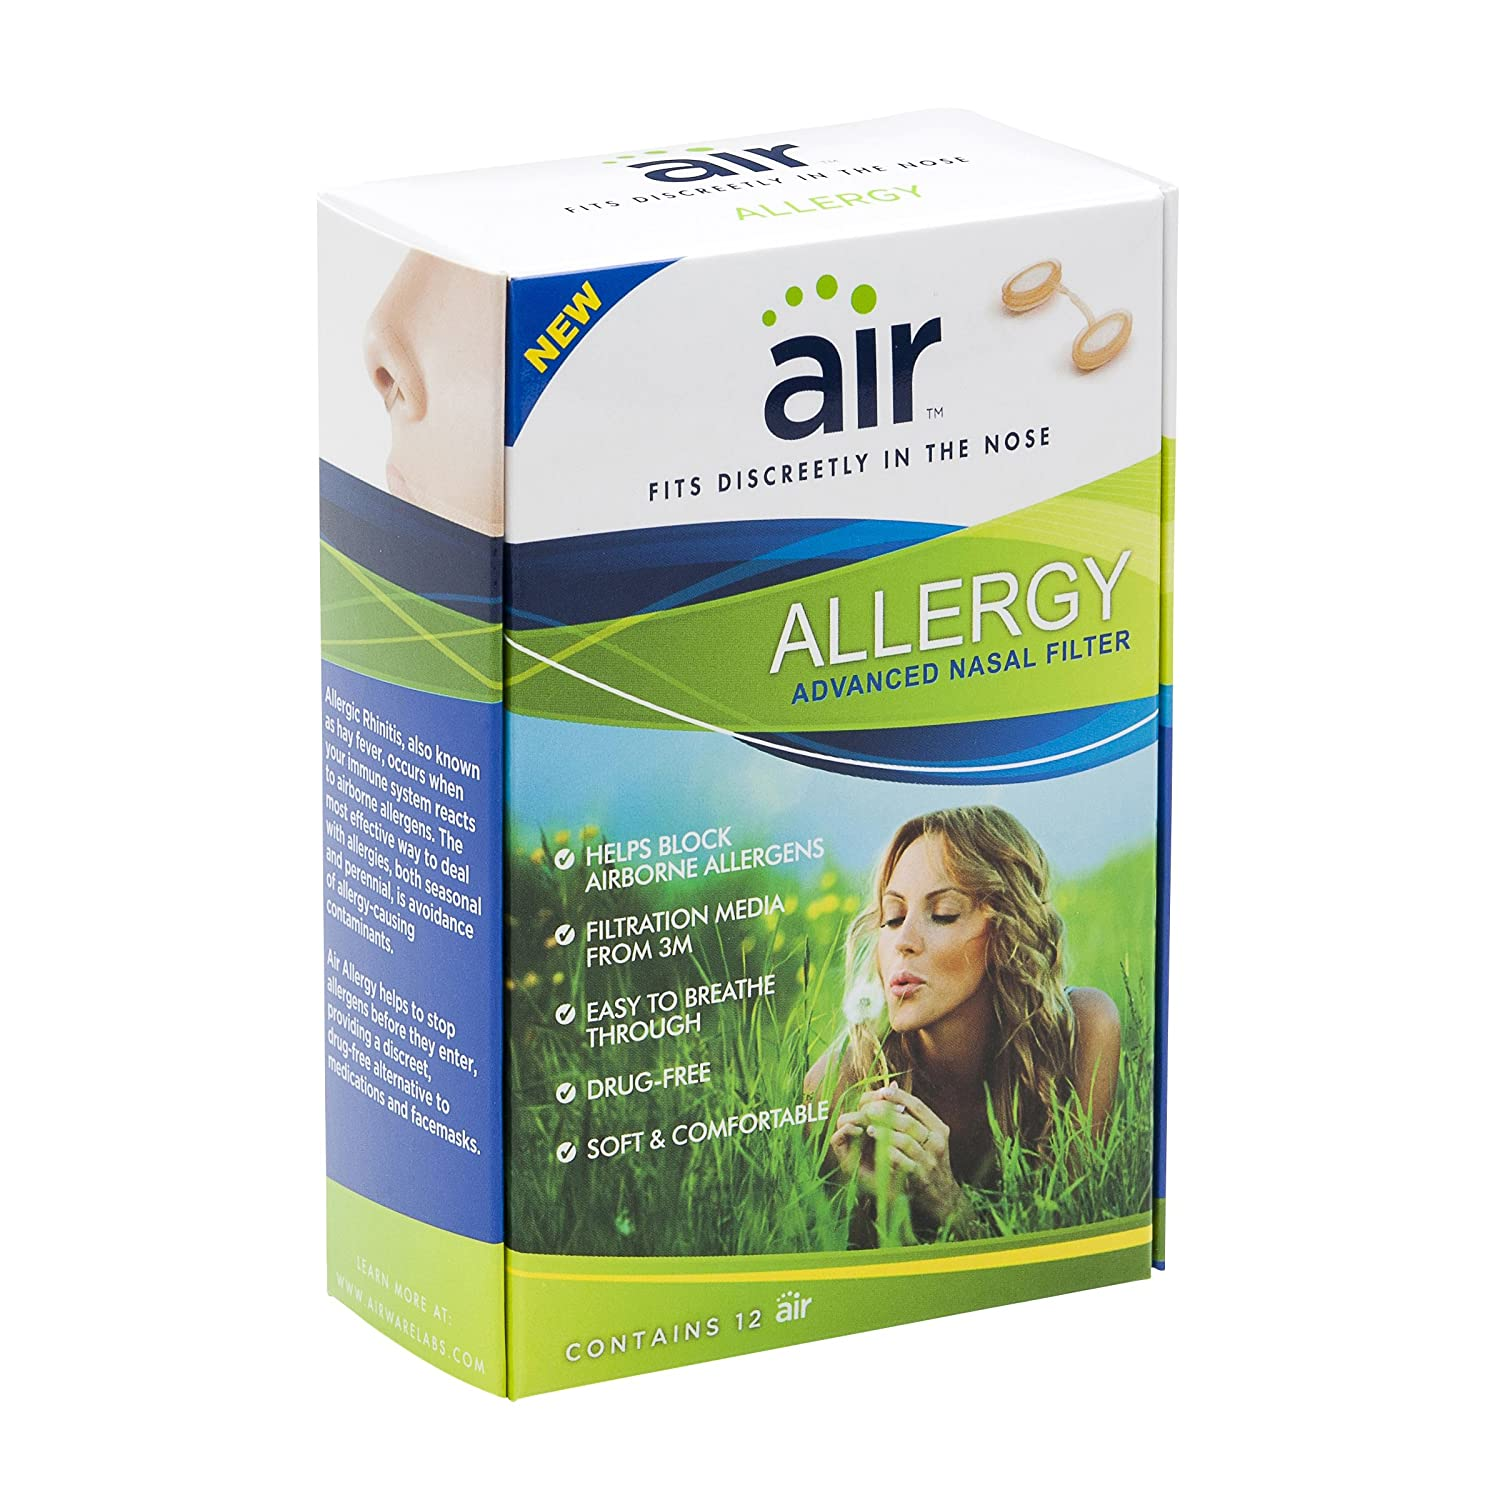 air allergy advanced 3m nasal filter 12 count health